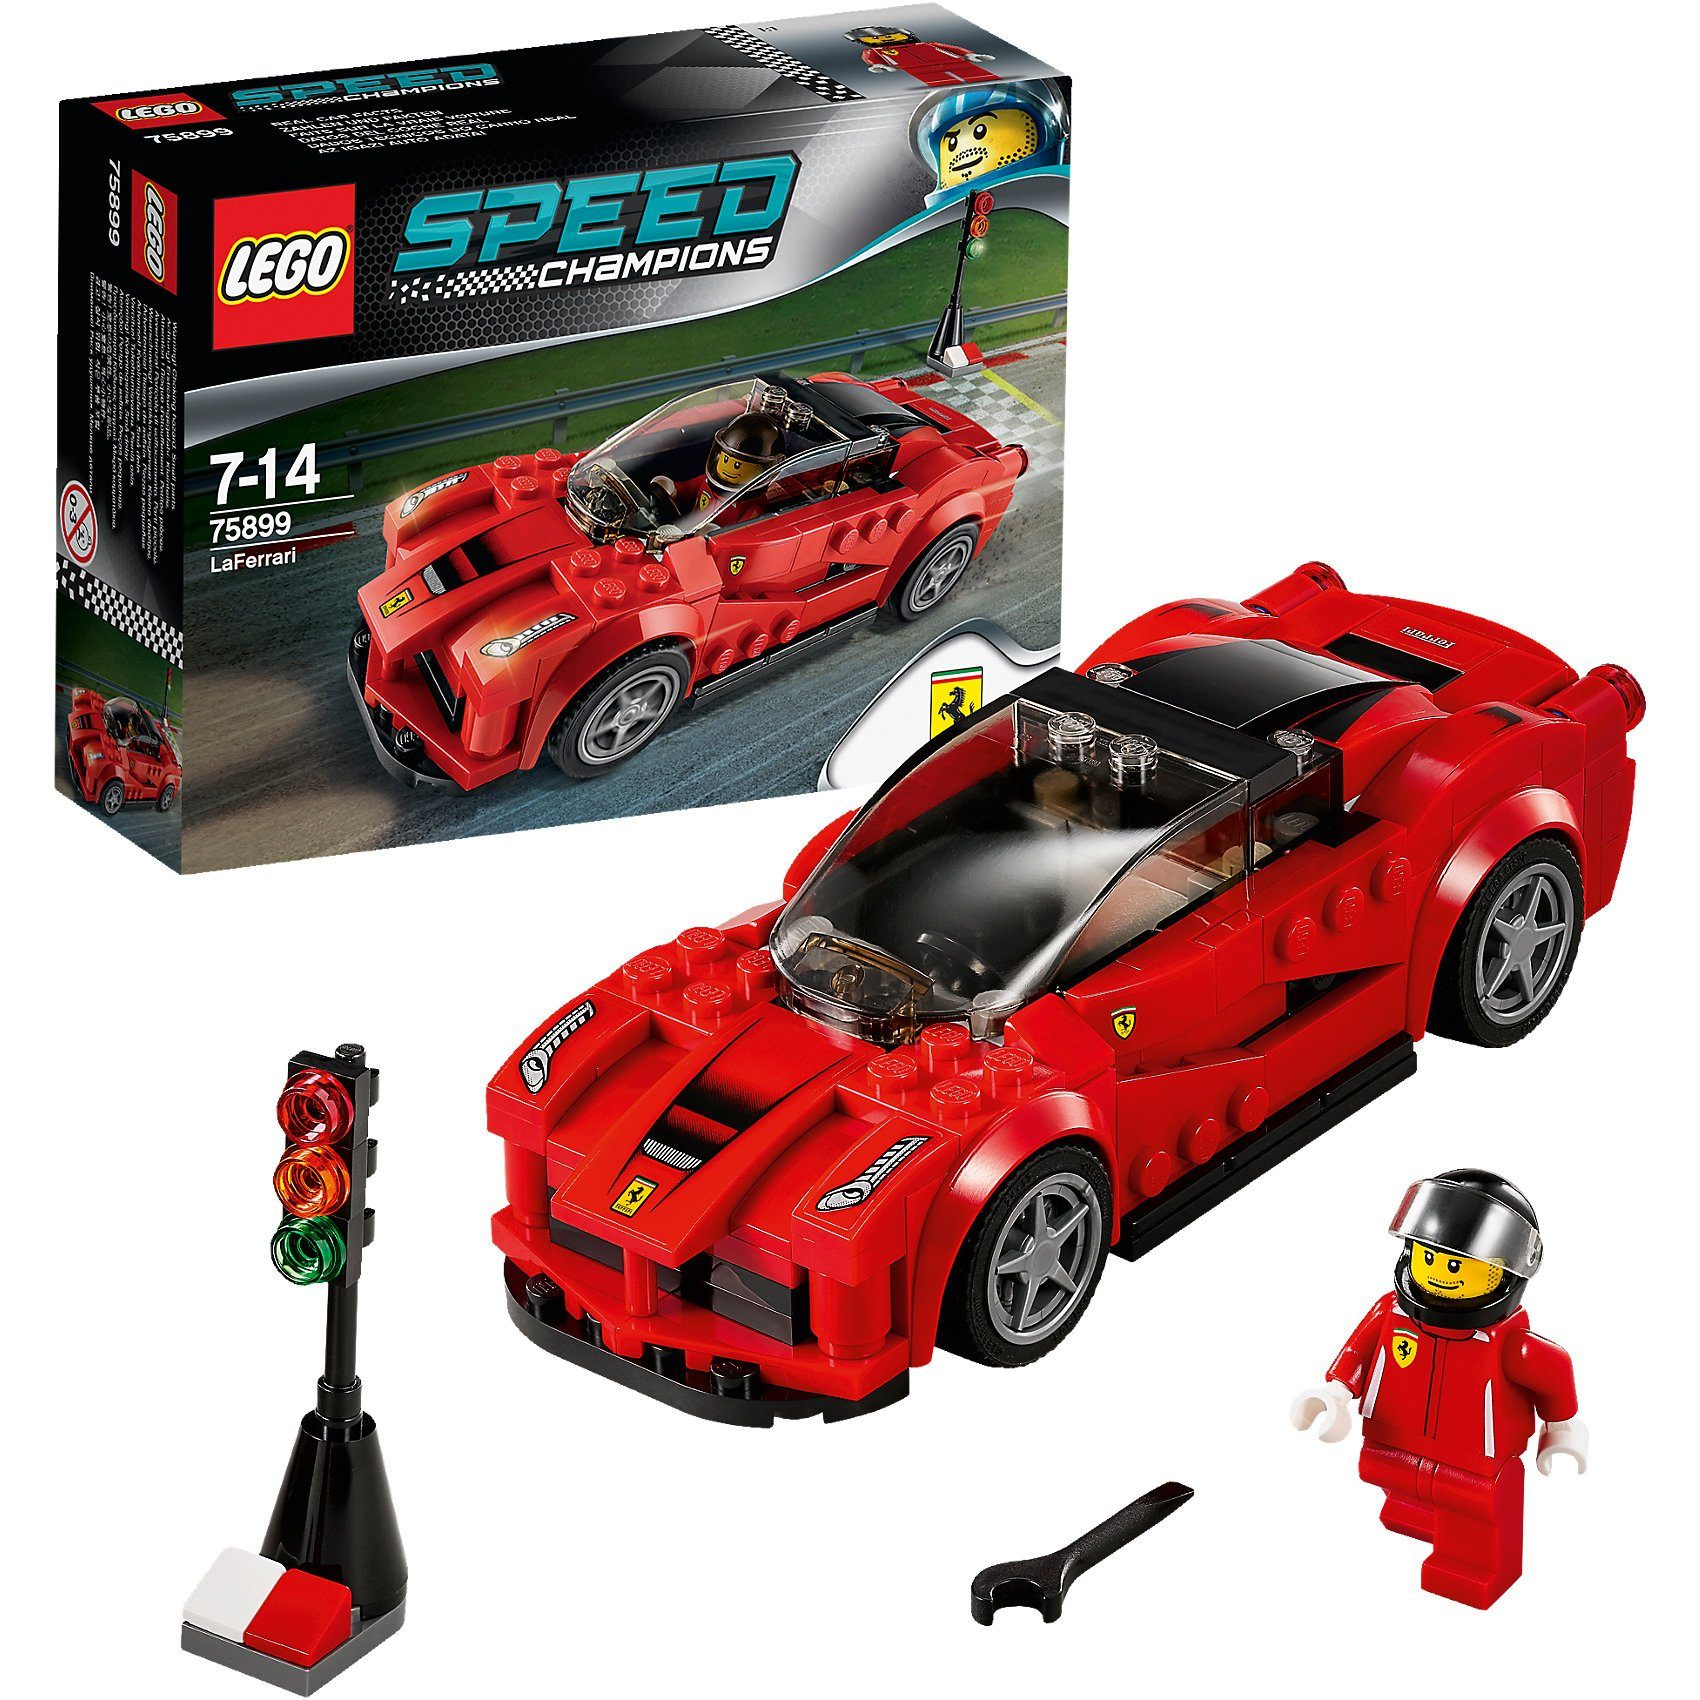 LEGO 75899 Speed: LaFerrari